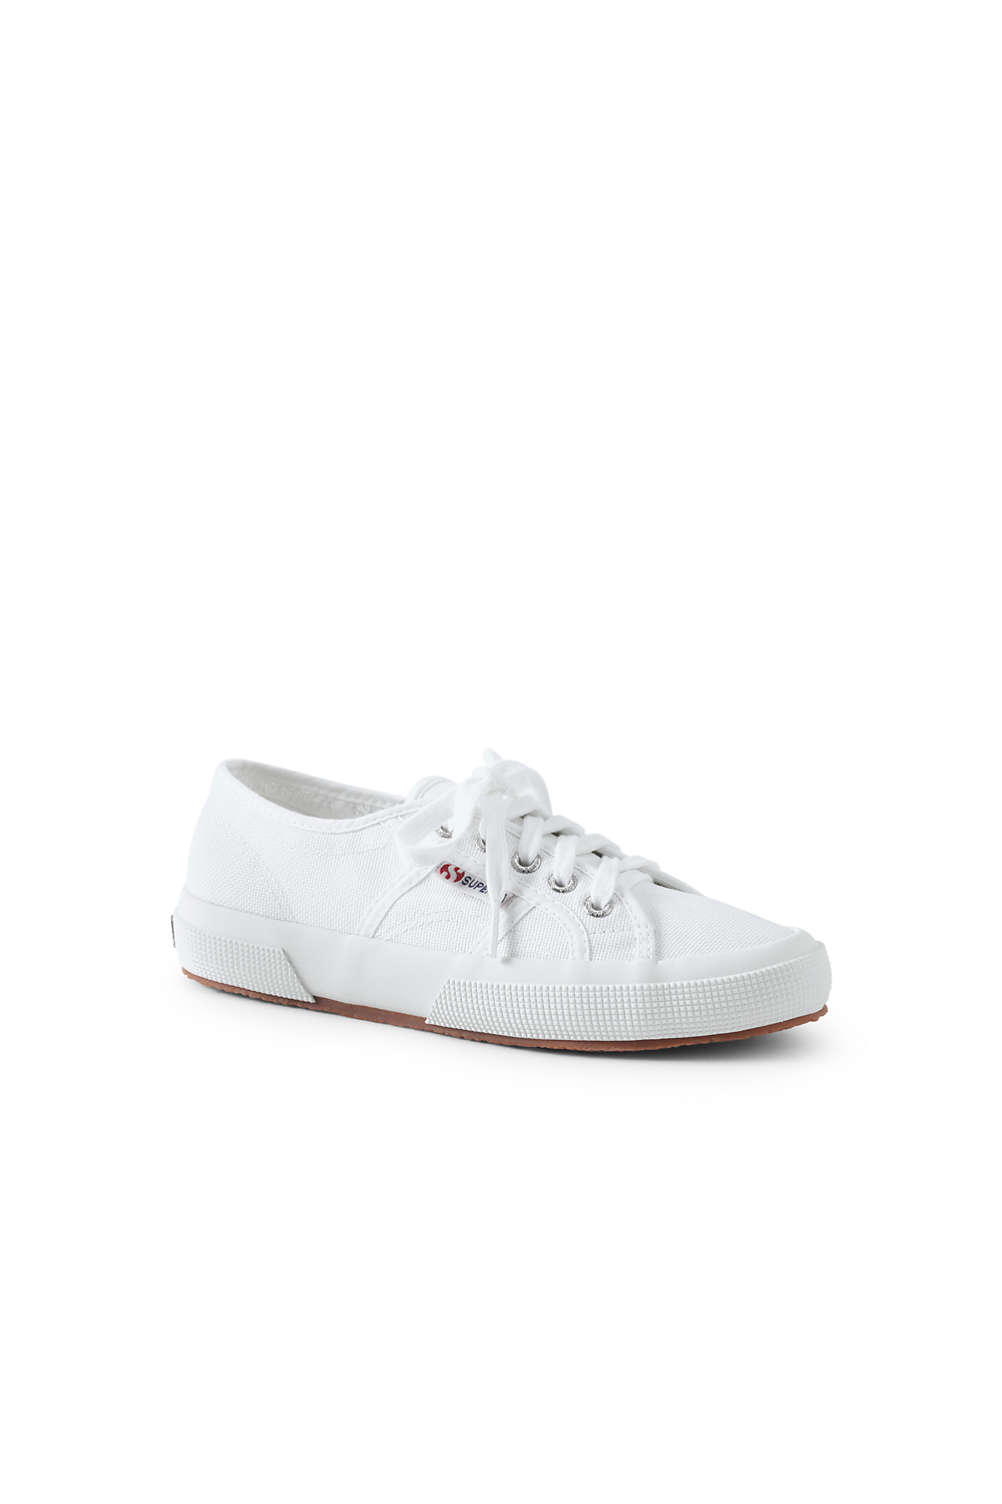 Women s Superga 2750 COTU Classic Sneakers from Lands  End 786479f07